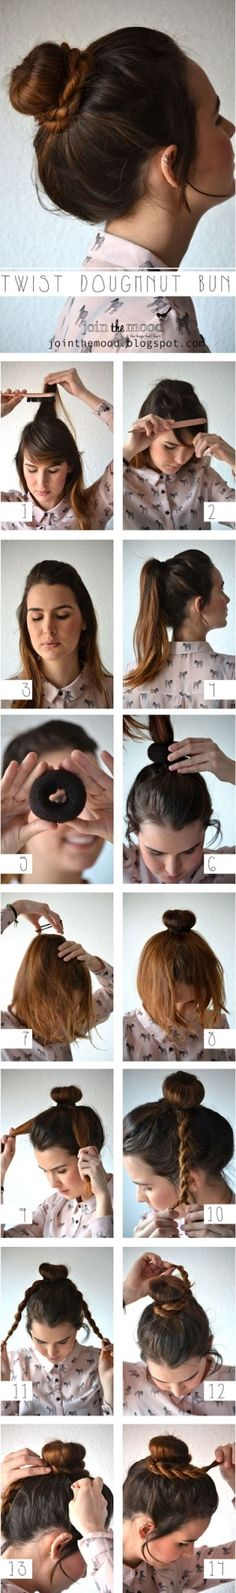 How To Make Twist Doughnut Bun For Your Hair | hairstyles tutorial by Hairstyle Tutorials